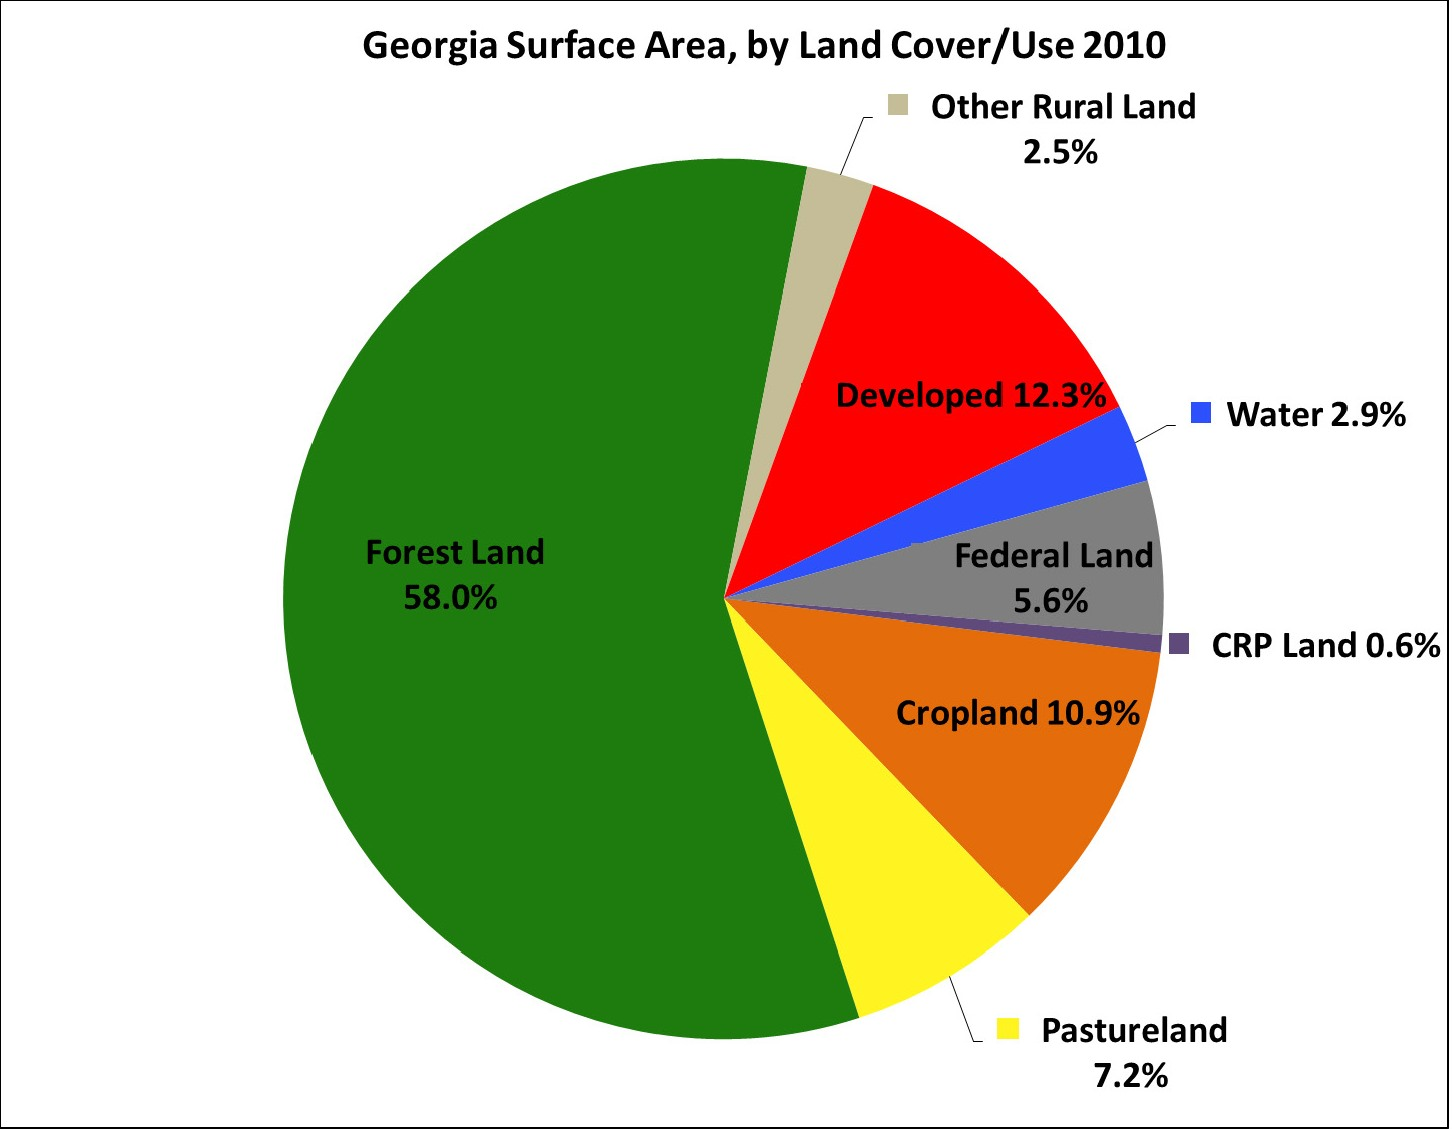 Georgia surfaces area by land cover/use 2010